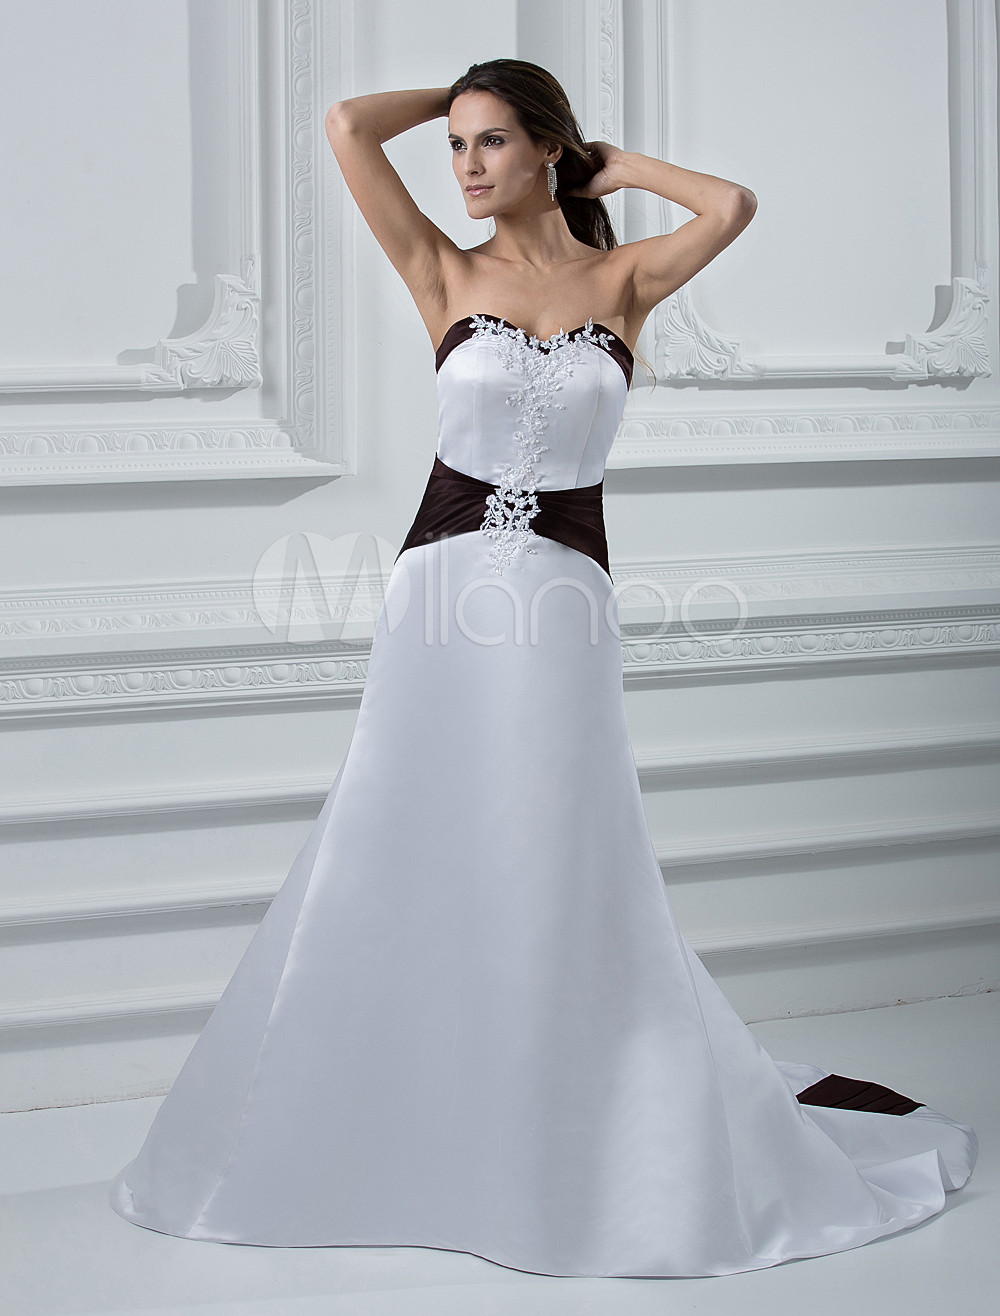 White Sweetheart Sash Wedding Dress